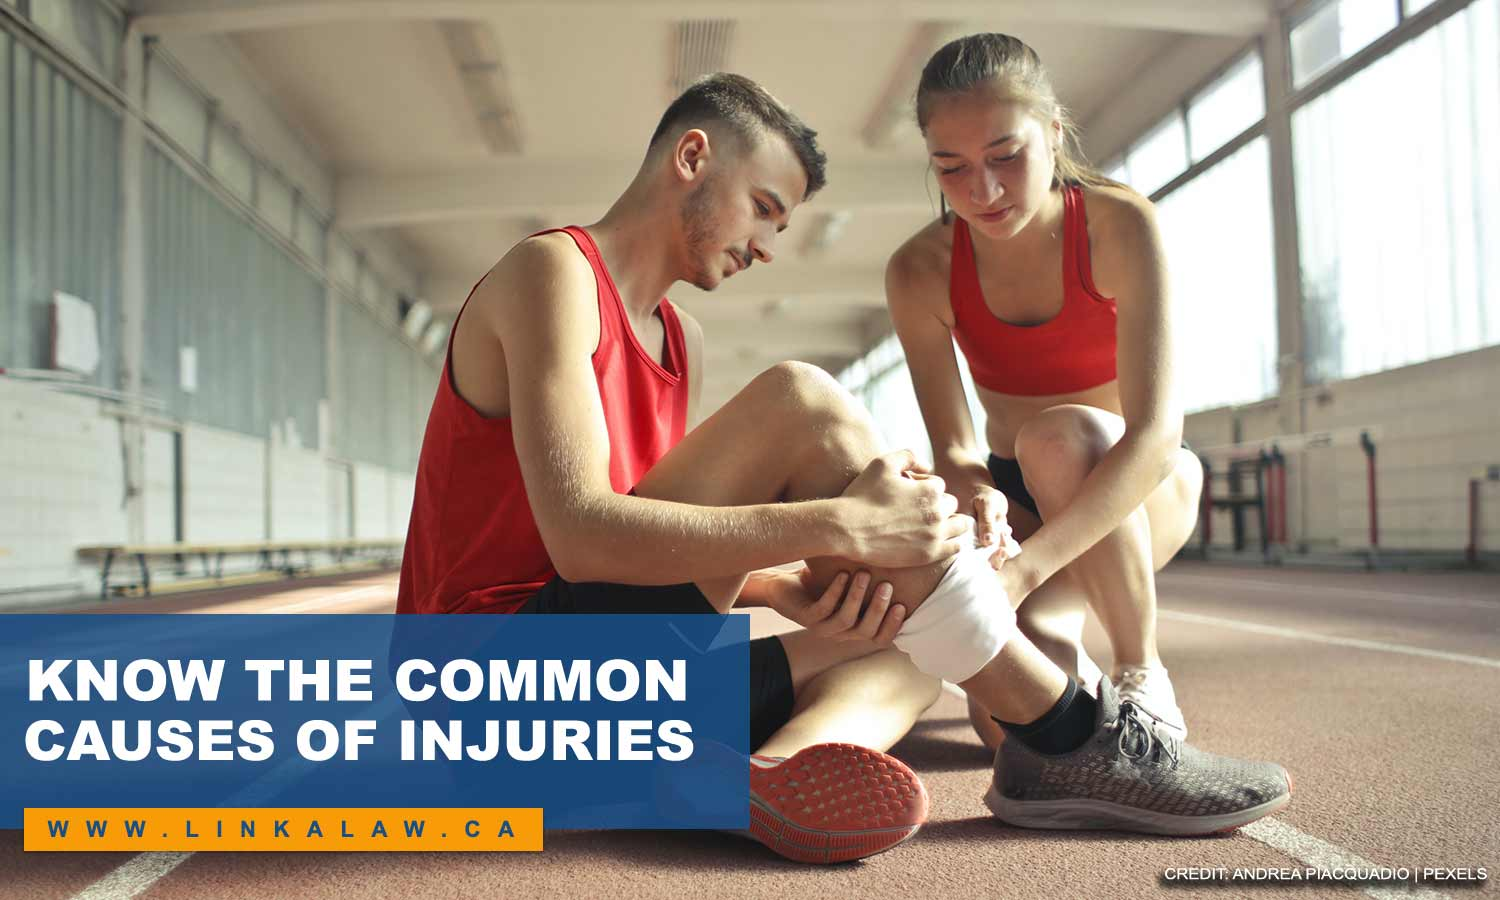 Know the common causes of injuries